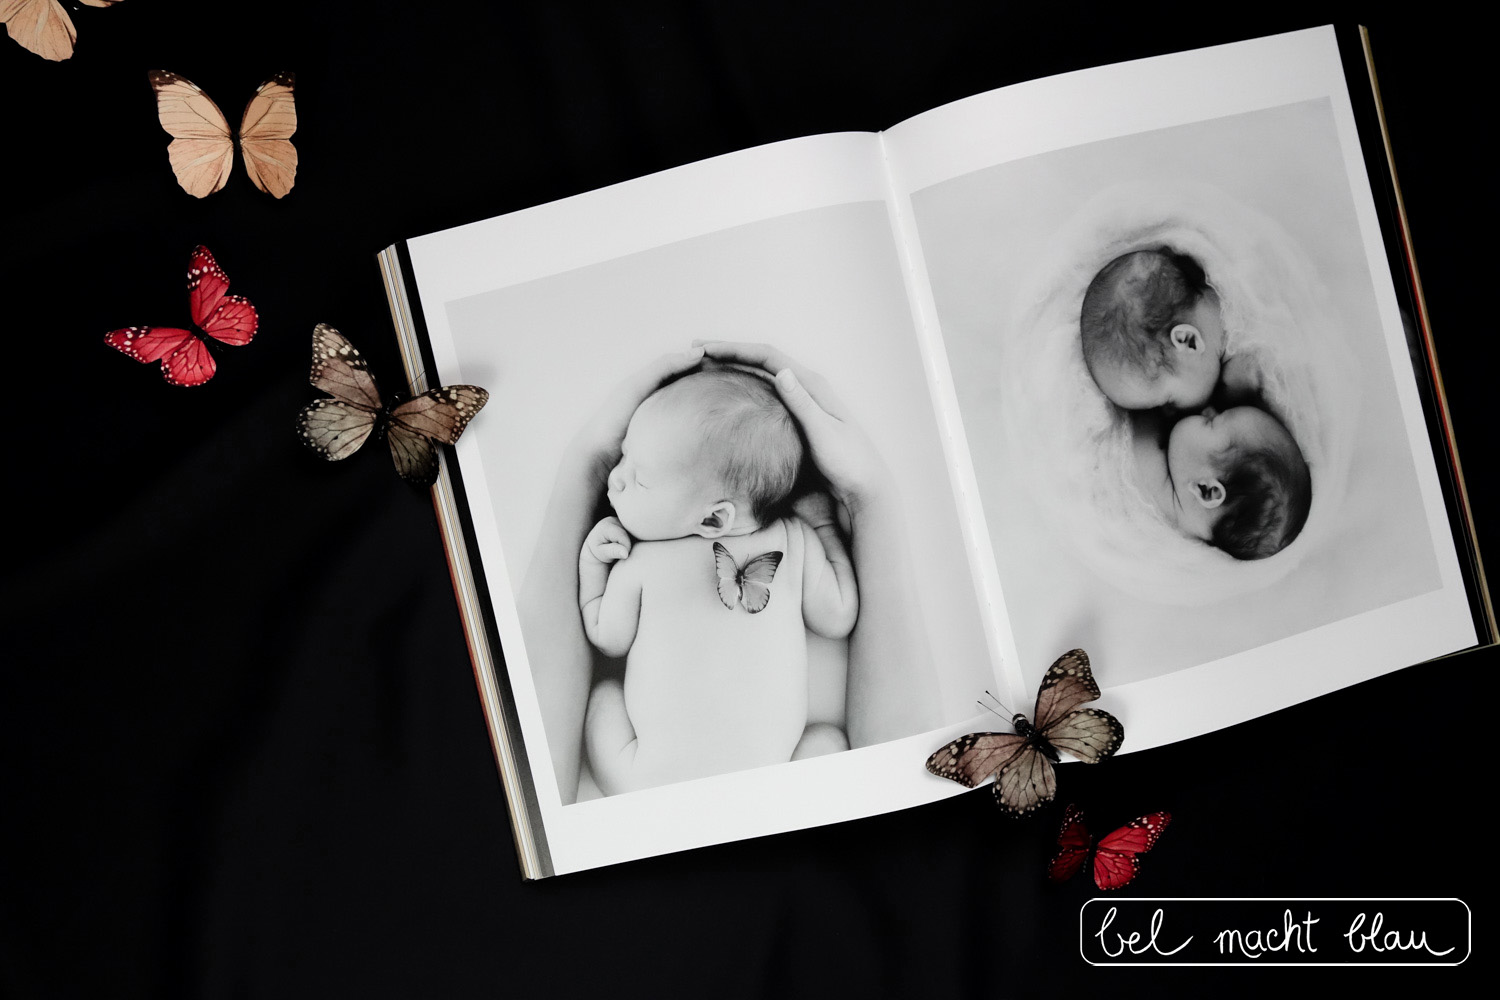 Anne Geddes Small World // Buchtipp zum Muttertag // Babyfotografie // Schmetterlinge